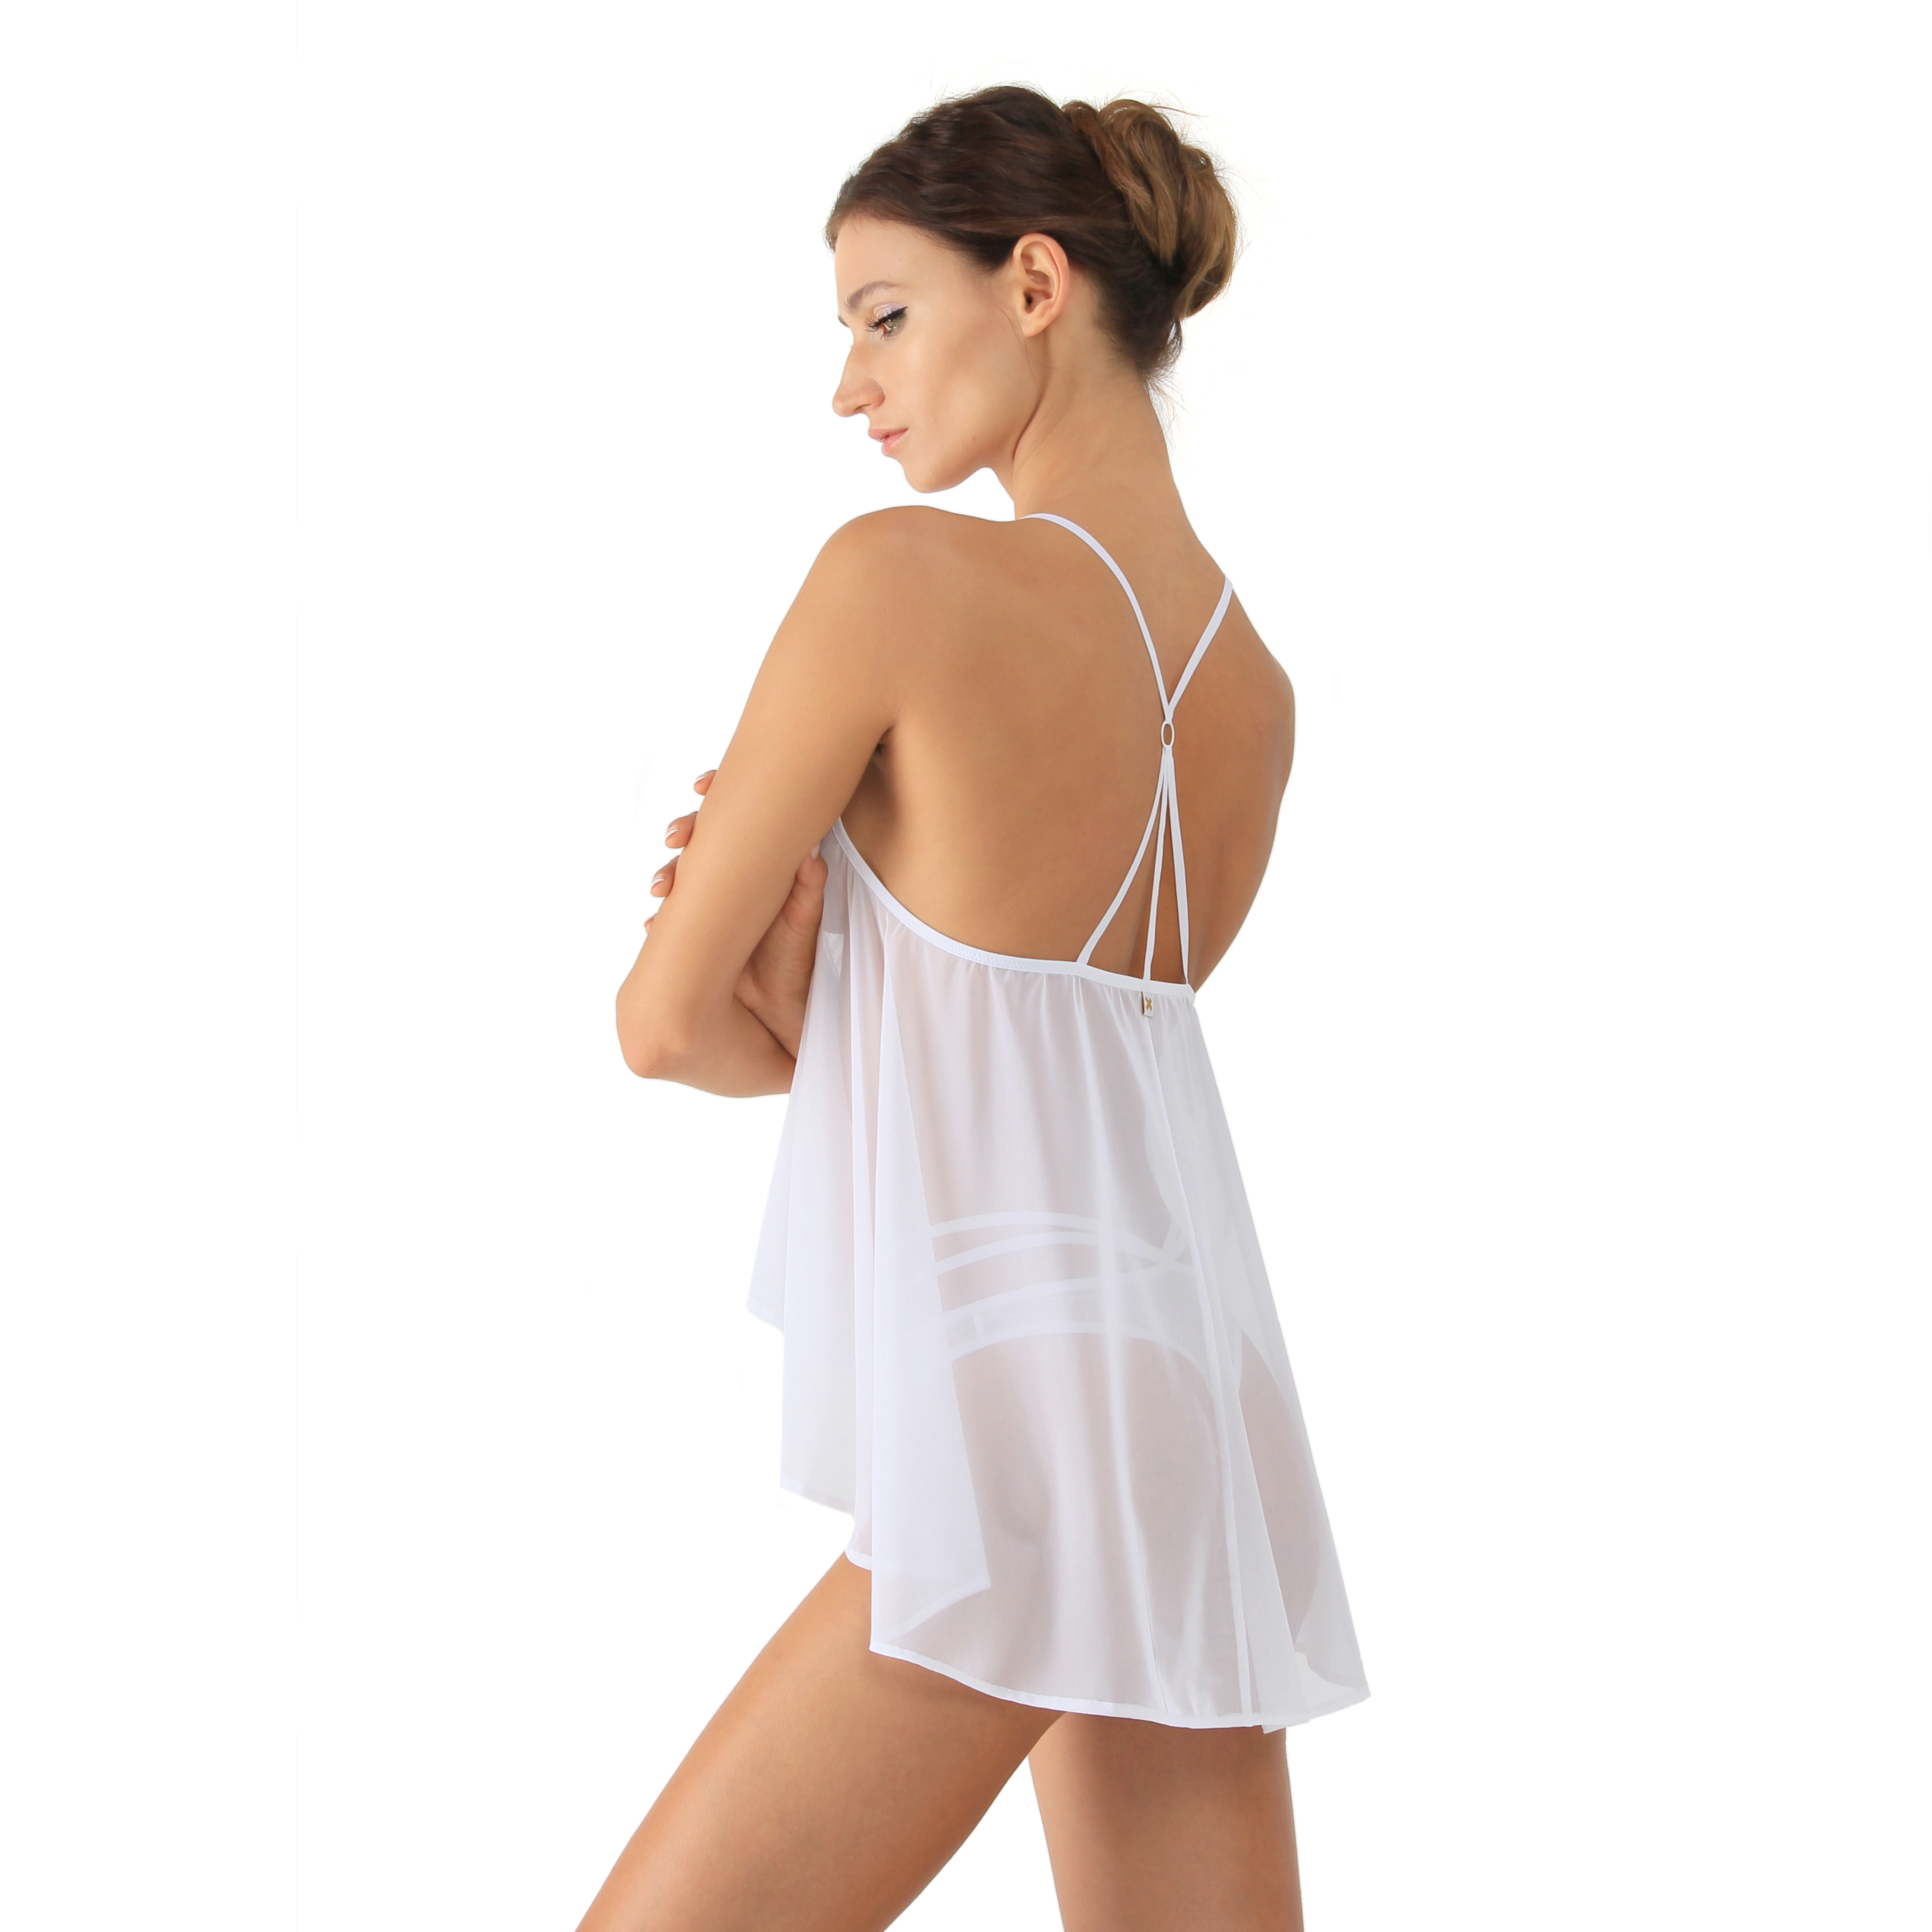 81e458bd83de3 White Mesh Babydoll Top With Bondage Back by Flash you and me